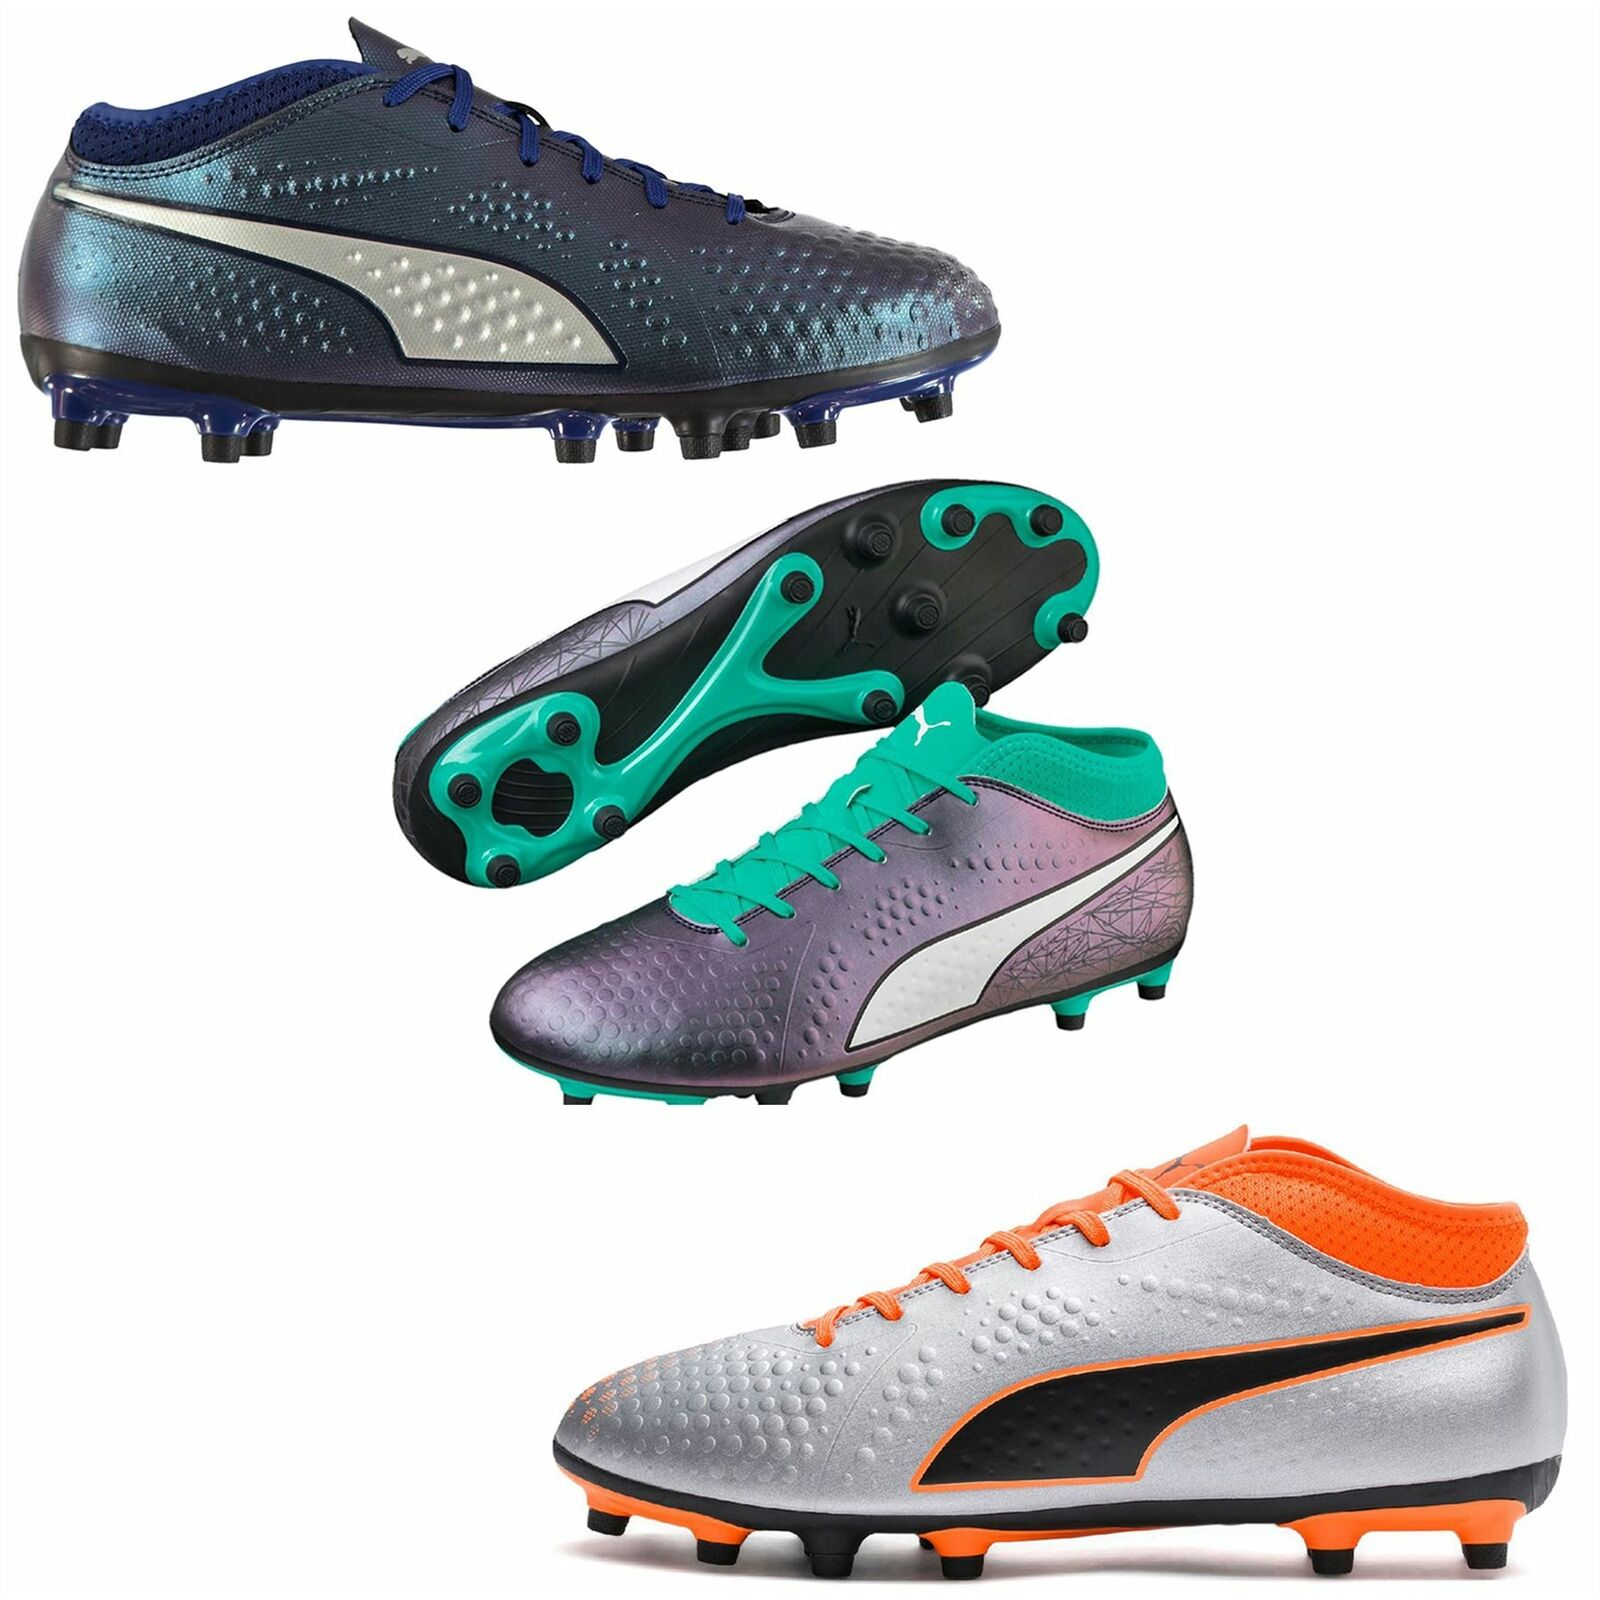 low priced 19d84 294b4 Puma ONE 4 FG Firm Ground Scarpe Da Da Da Calcio Da Uomo Scarpe da calcio  tacchetti   Outlet Online Store e4be9a